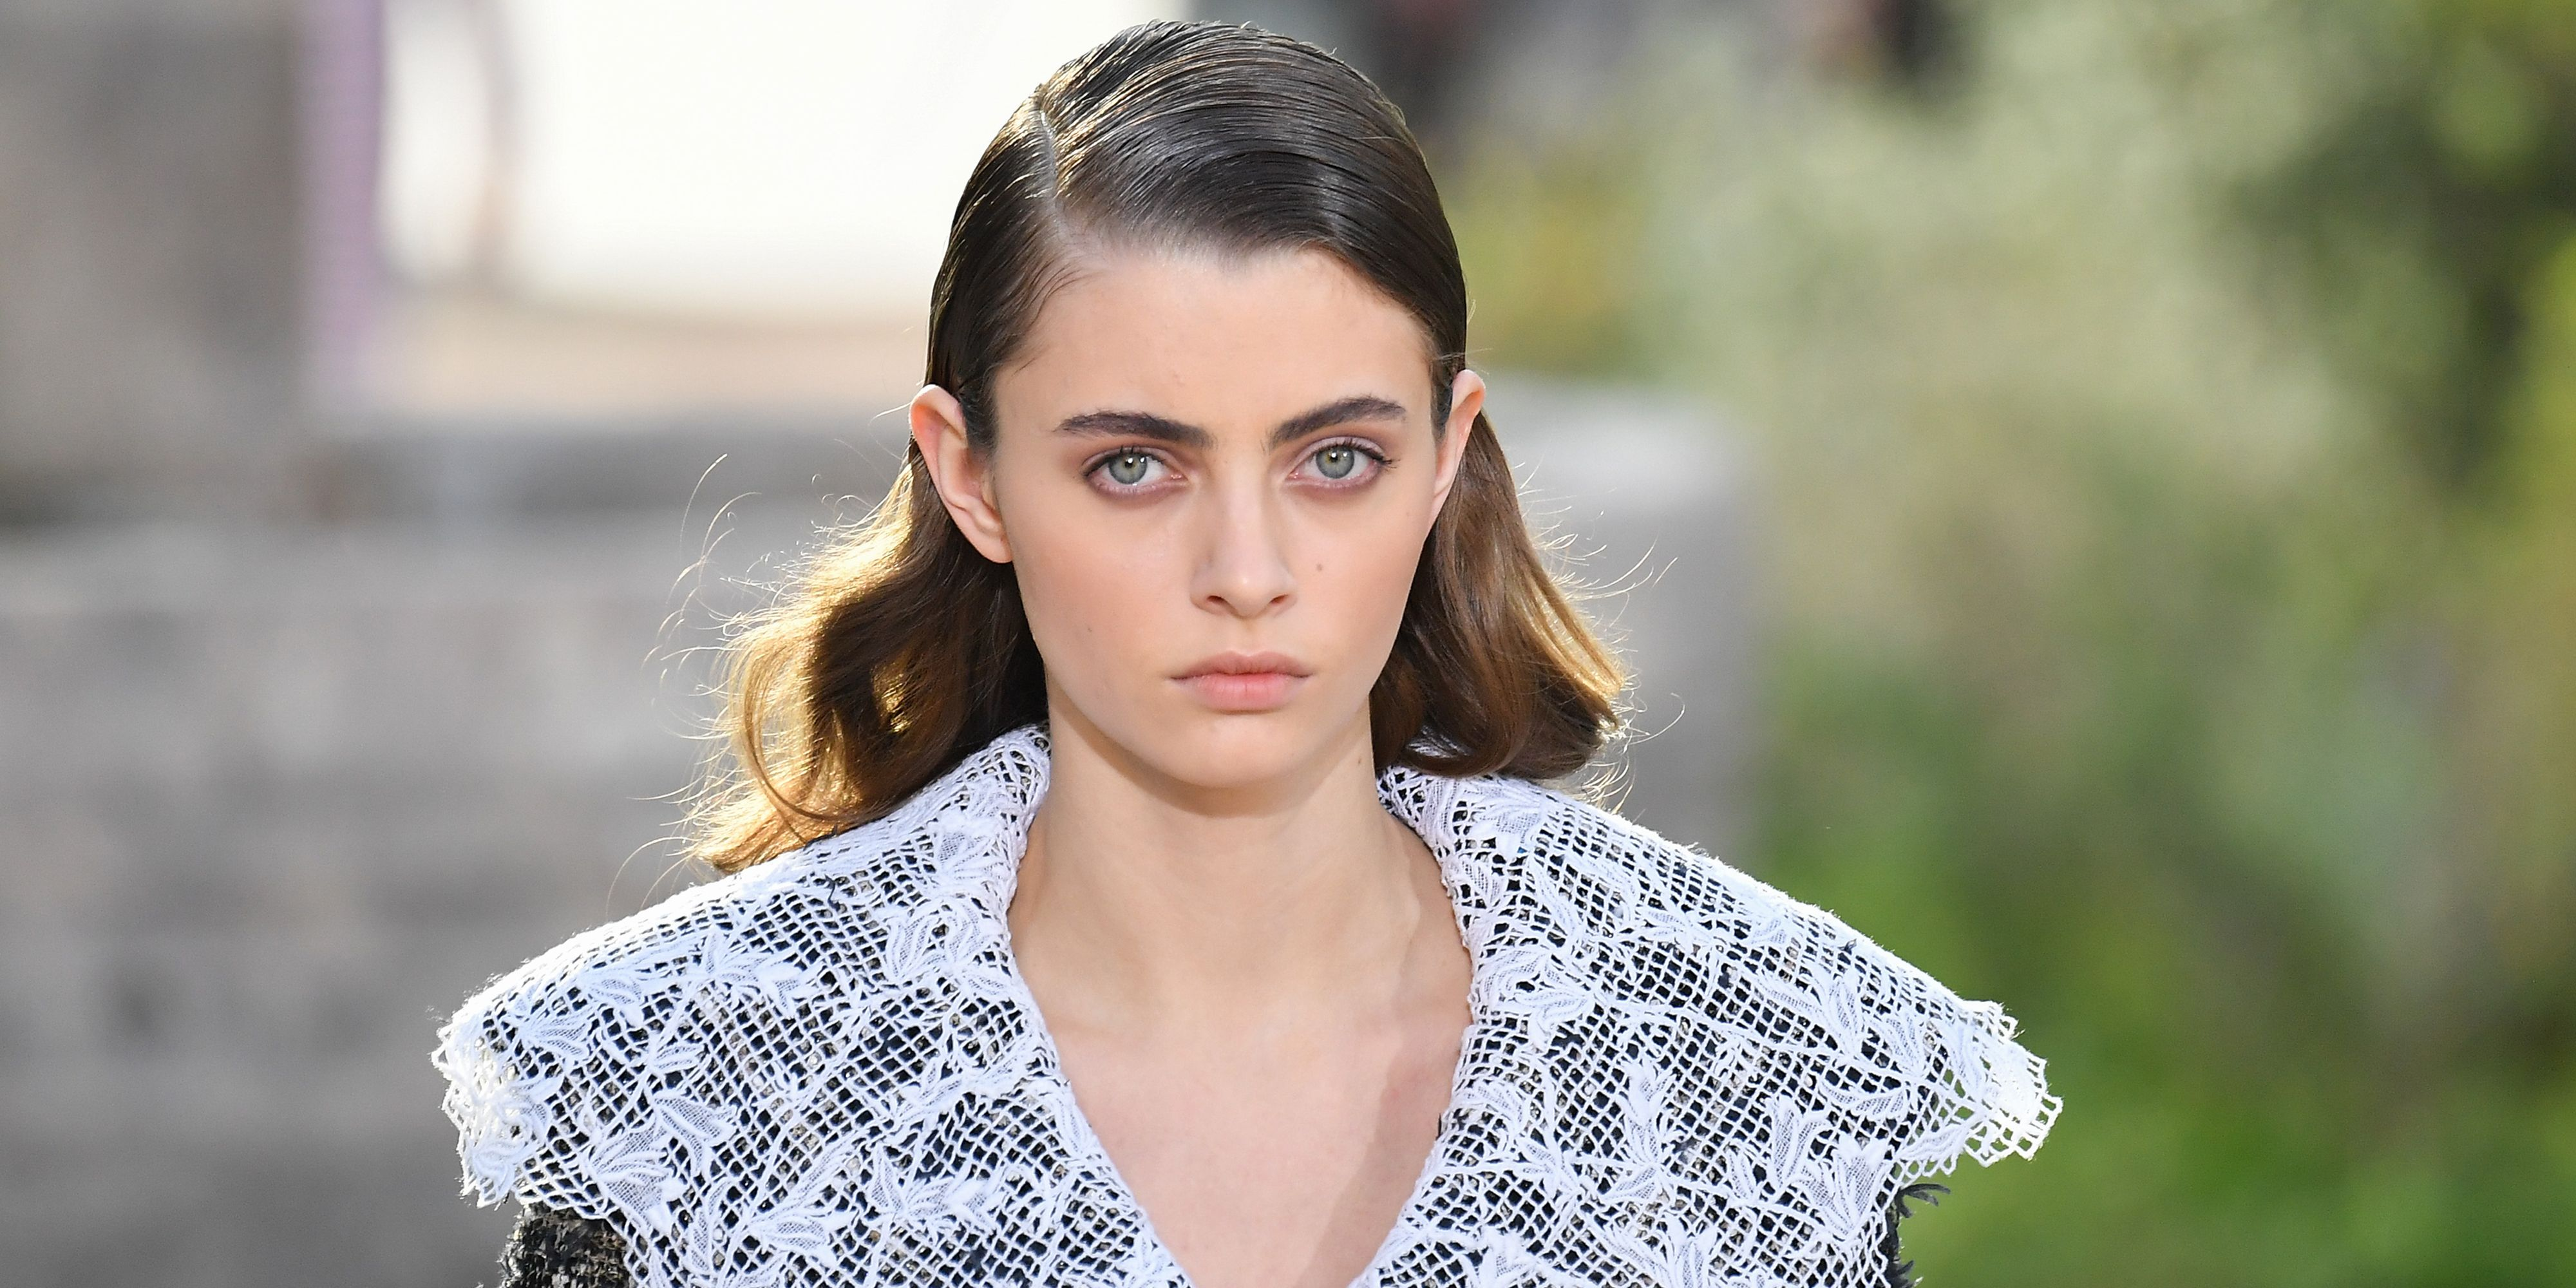 Slicked-back hair is back according to the Chanel couture show